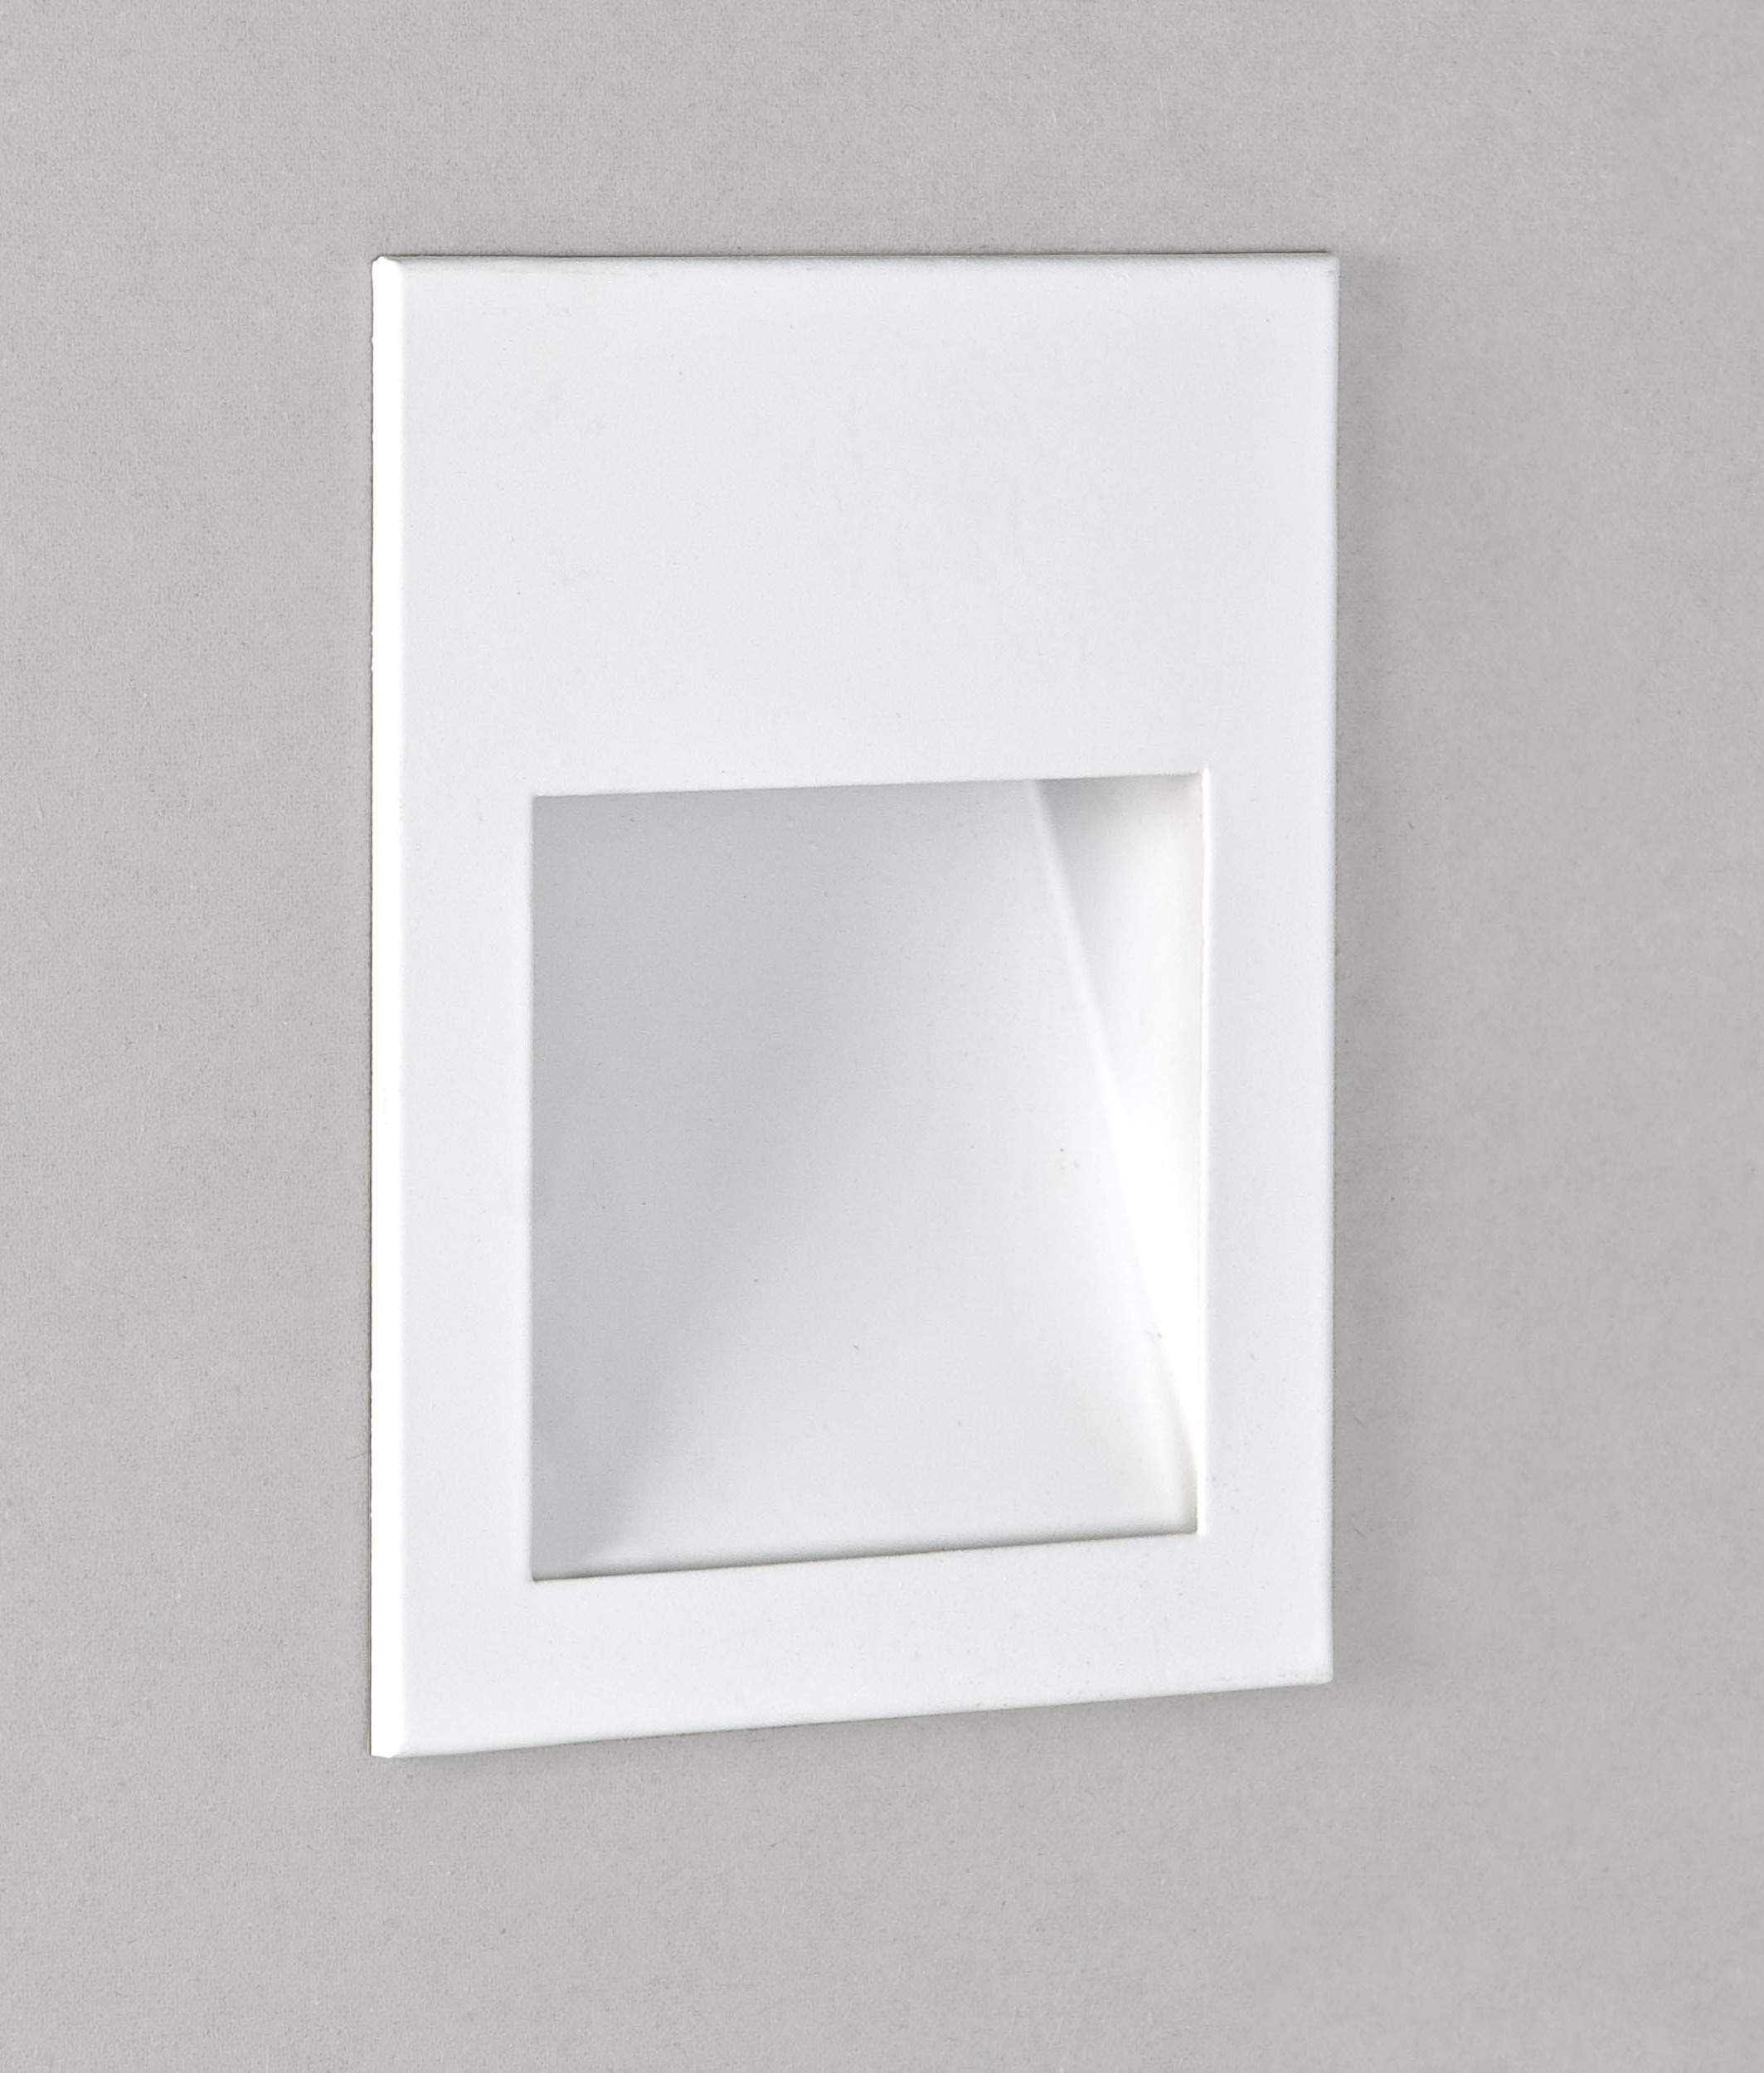 Recessed Wall Lighting: Low Level Guide Light. Wall Recessed